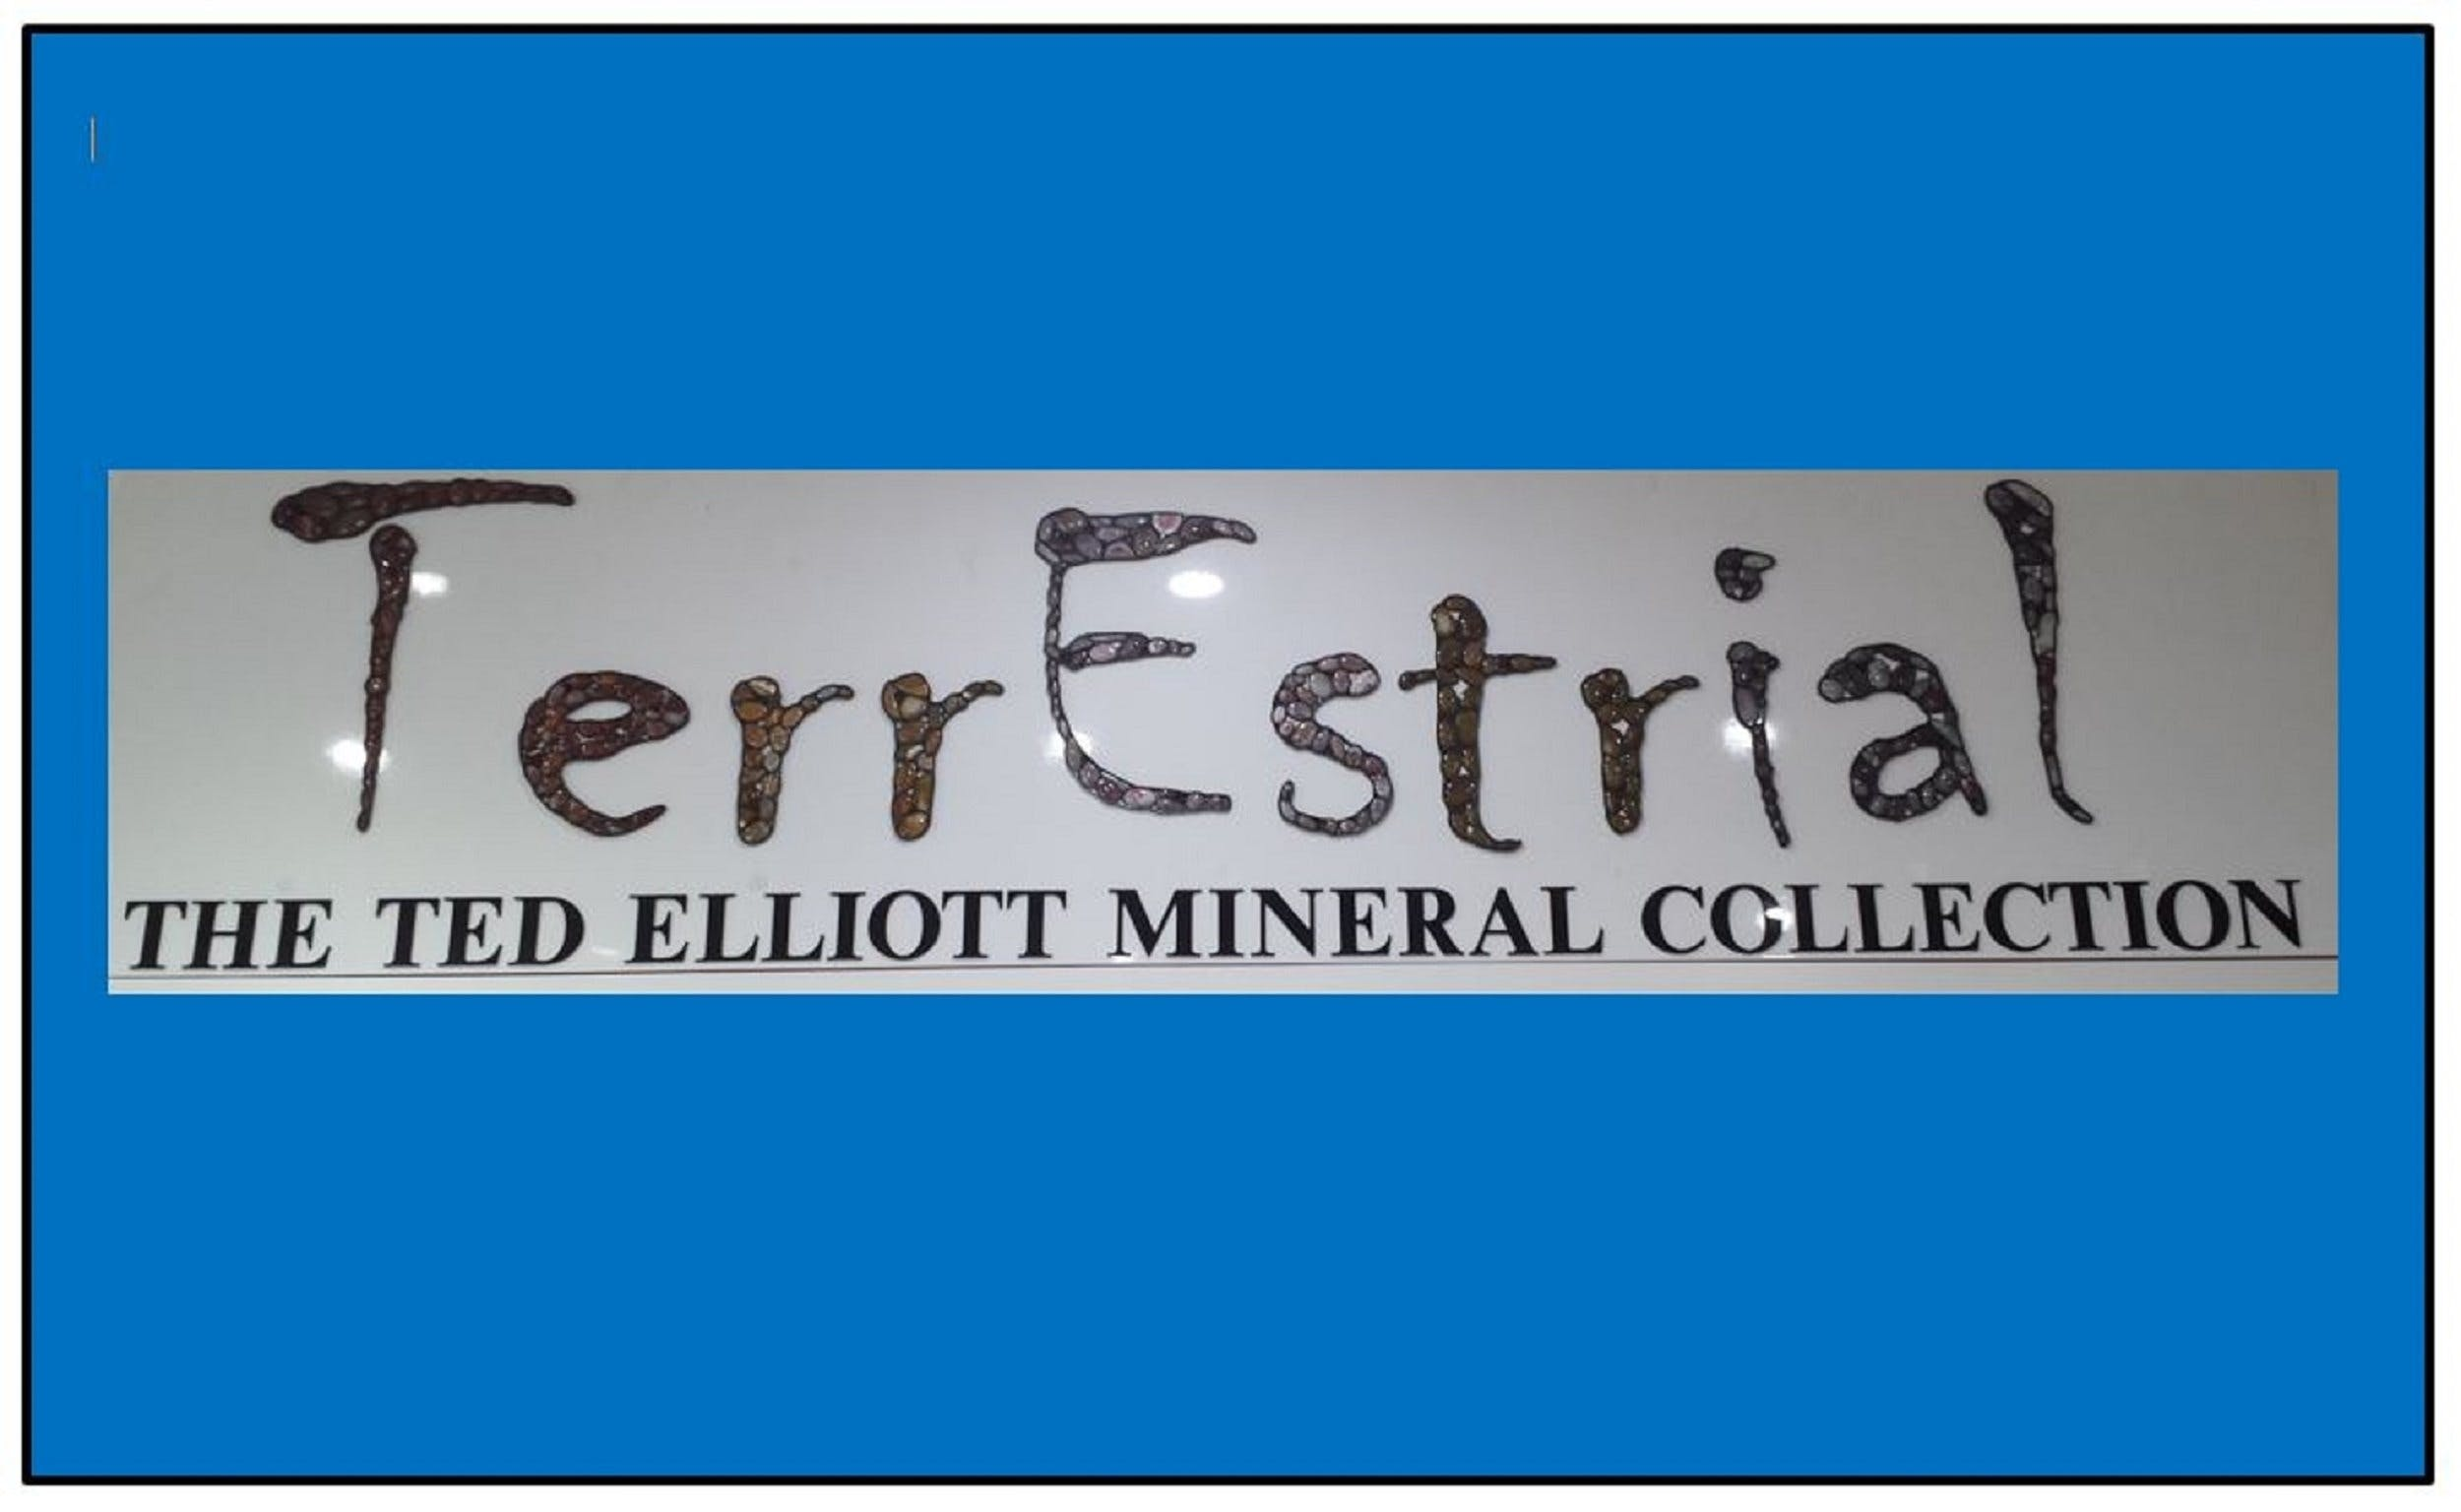 The Ted Elliott Mineral Collection - Broome Tourism